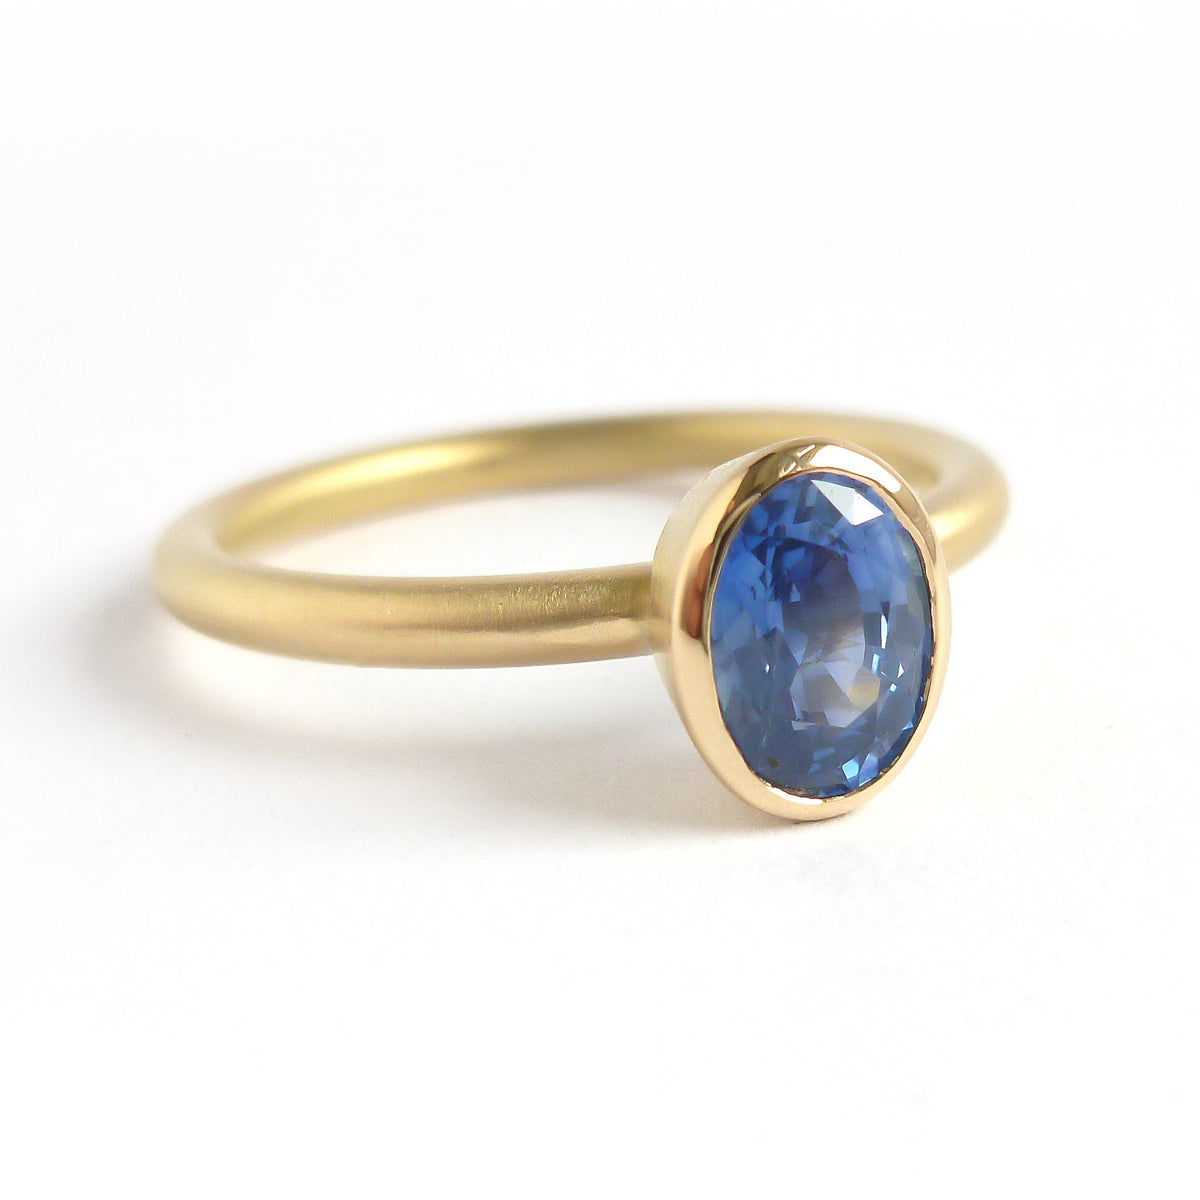 Contemporary bespoke 18ct 18k gold ring oval blue sapphire Sue Lane